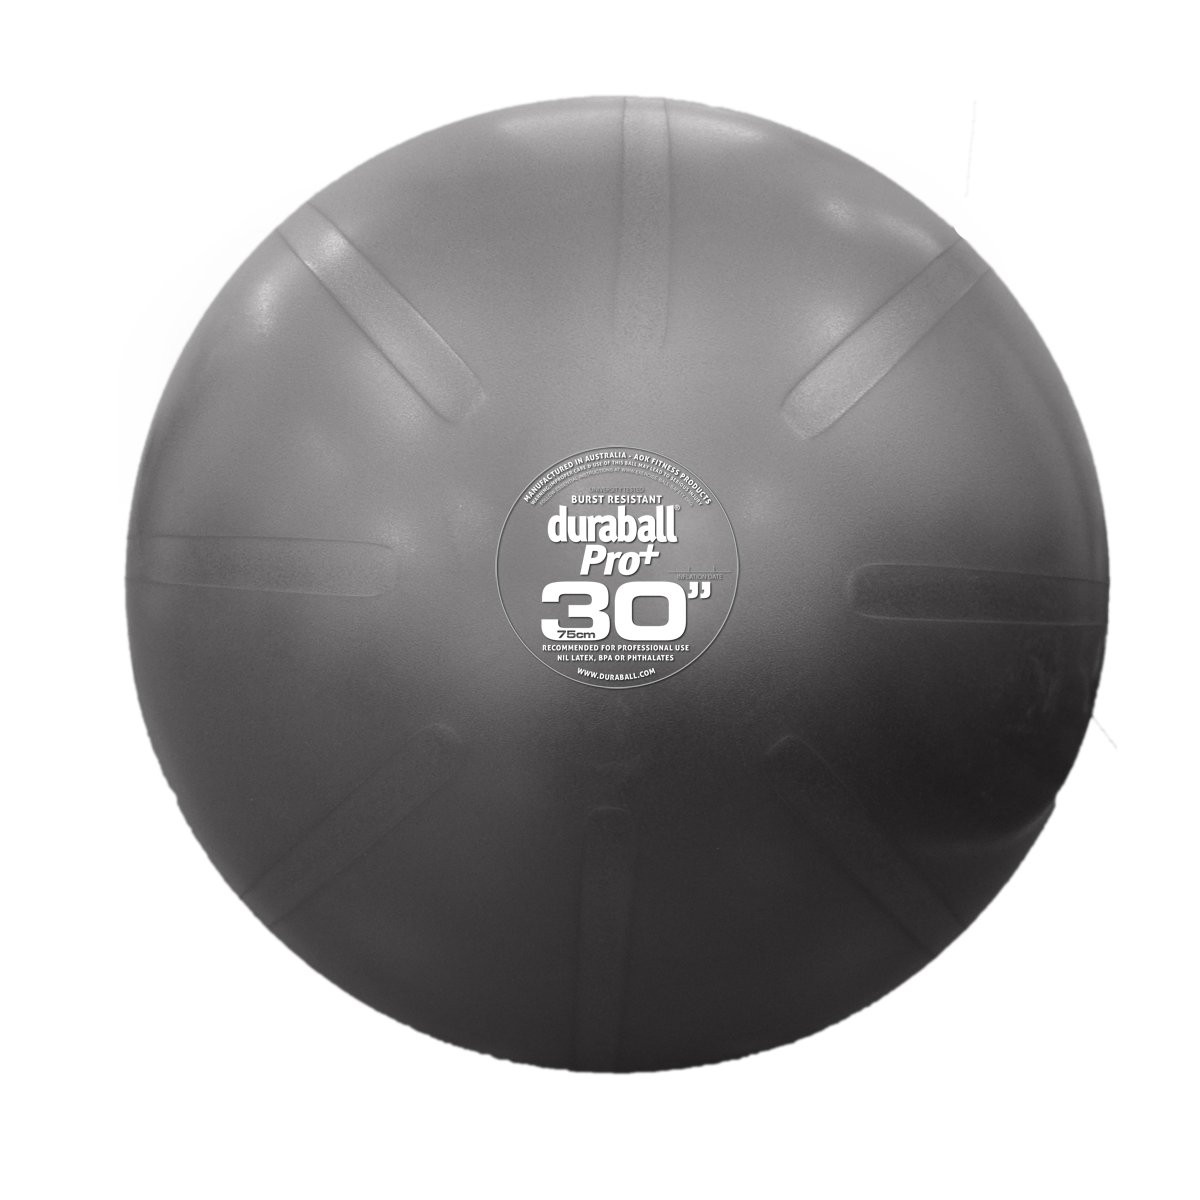 "Fitterfirst Duraball Pro Exercise Ball - 30"" - Silver"